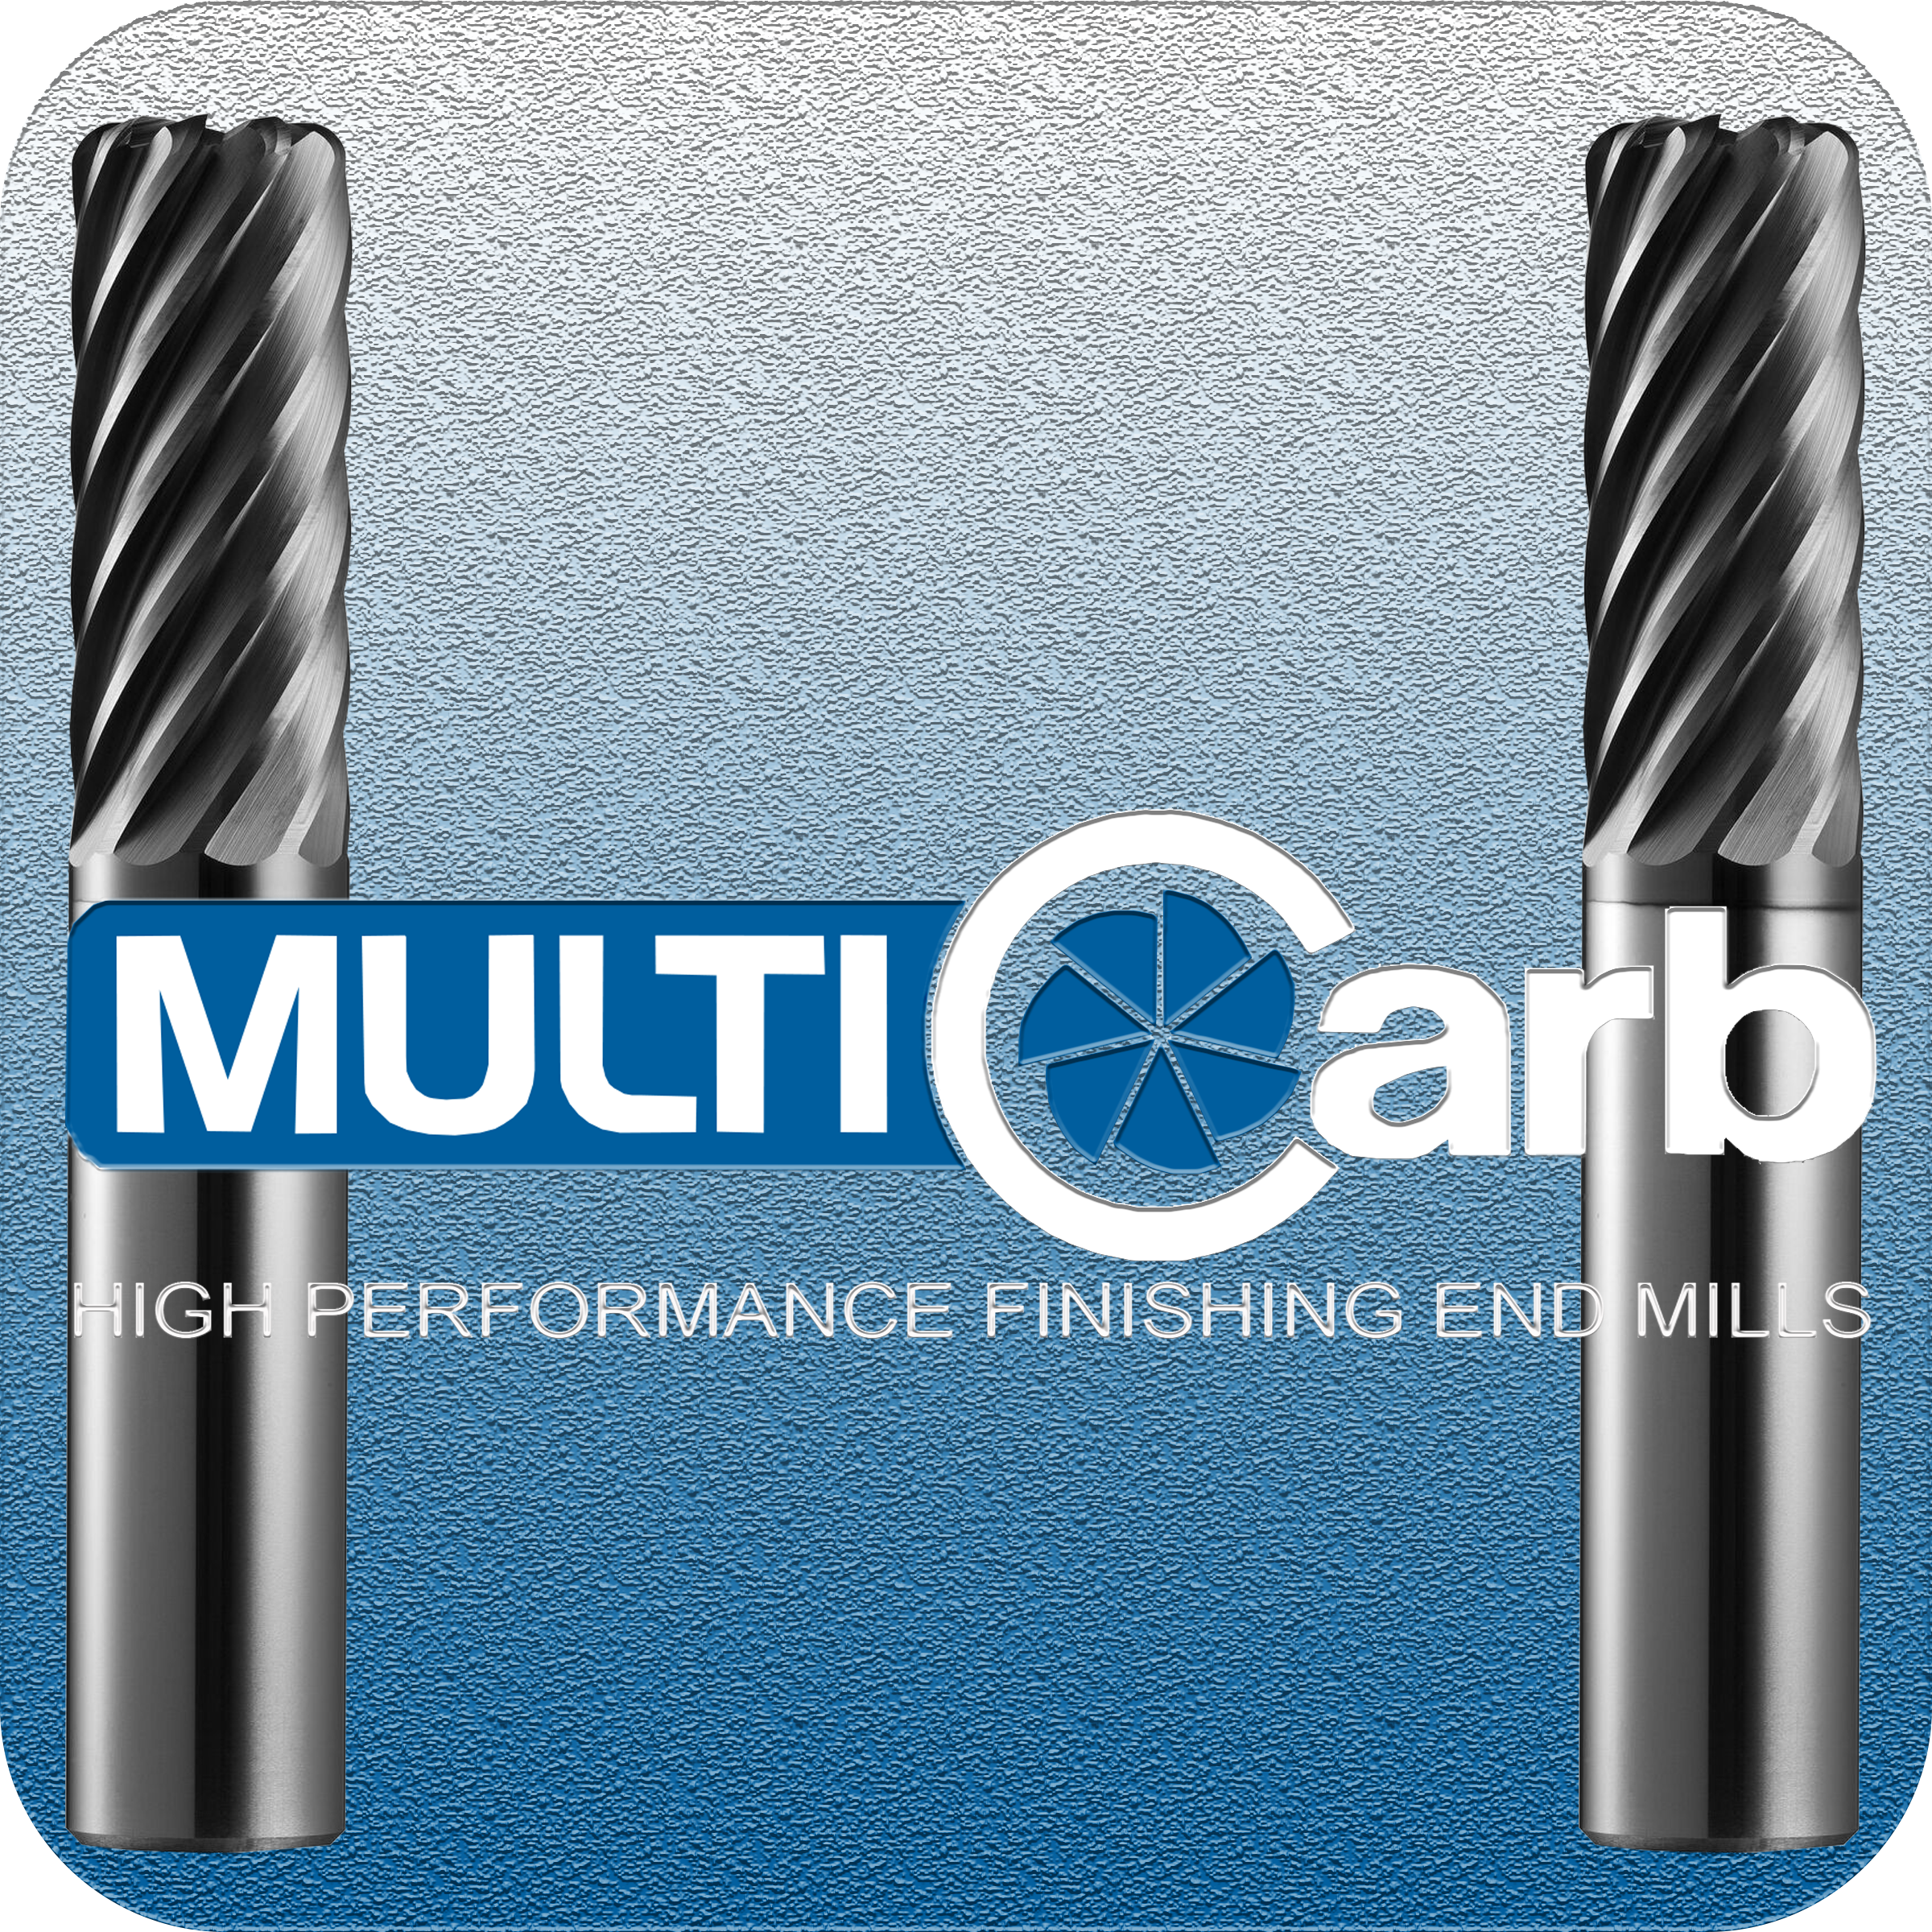 Multi-Carb | Series 66